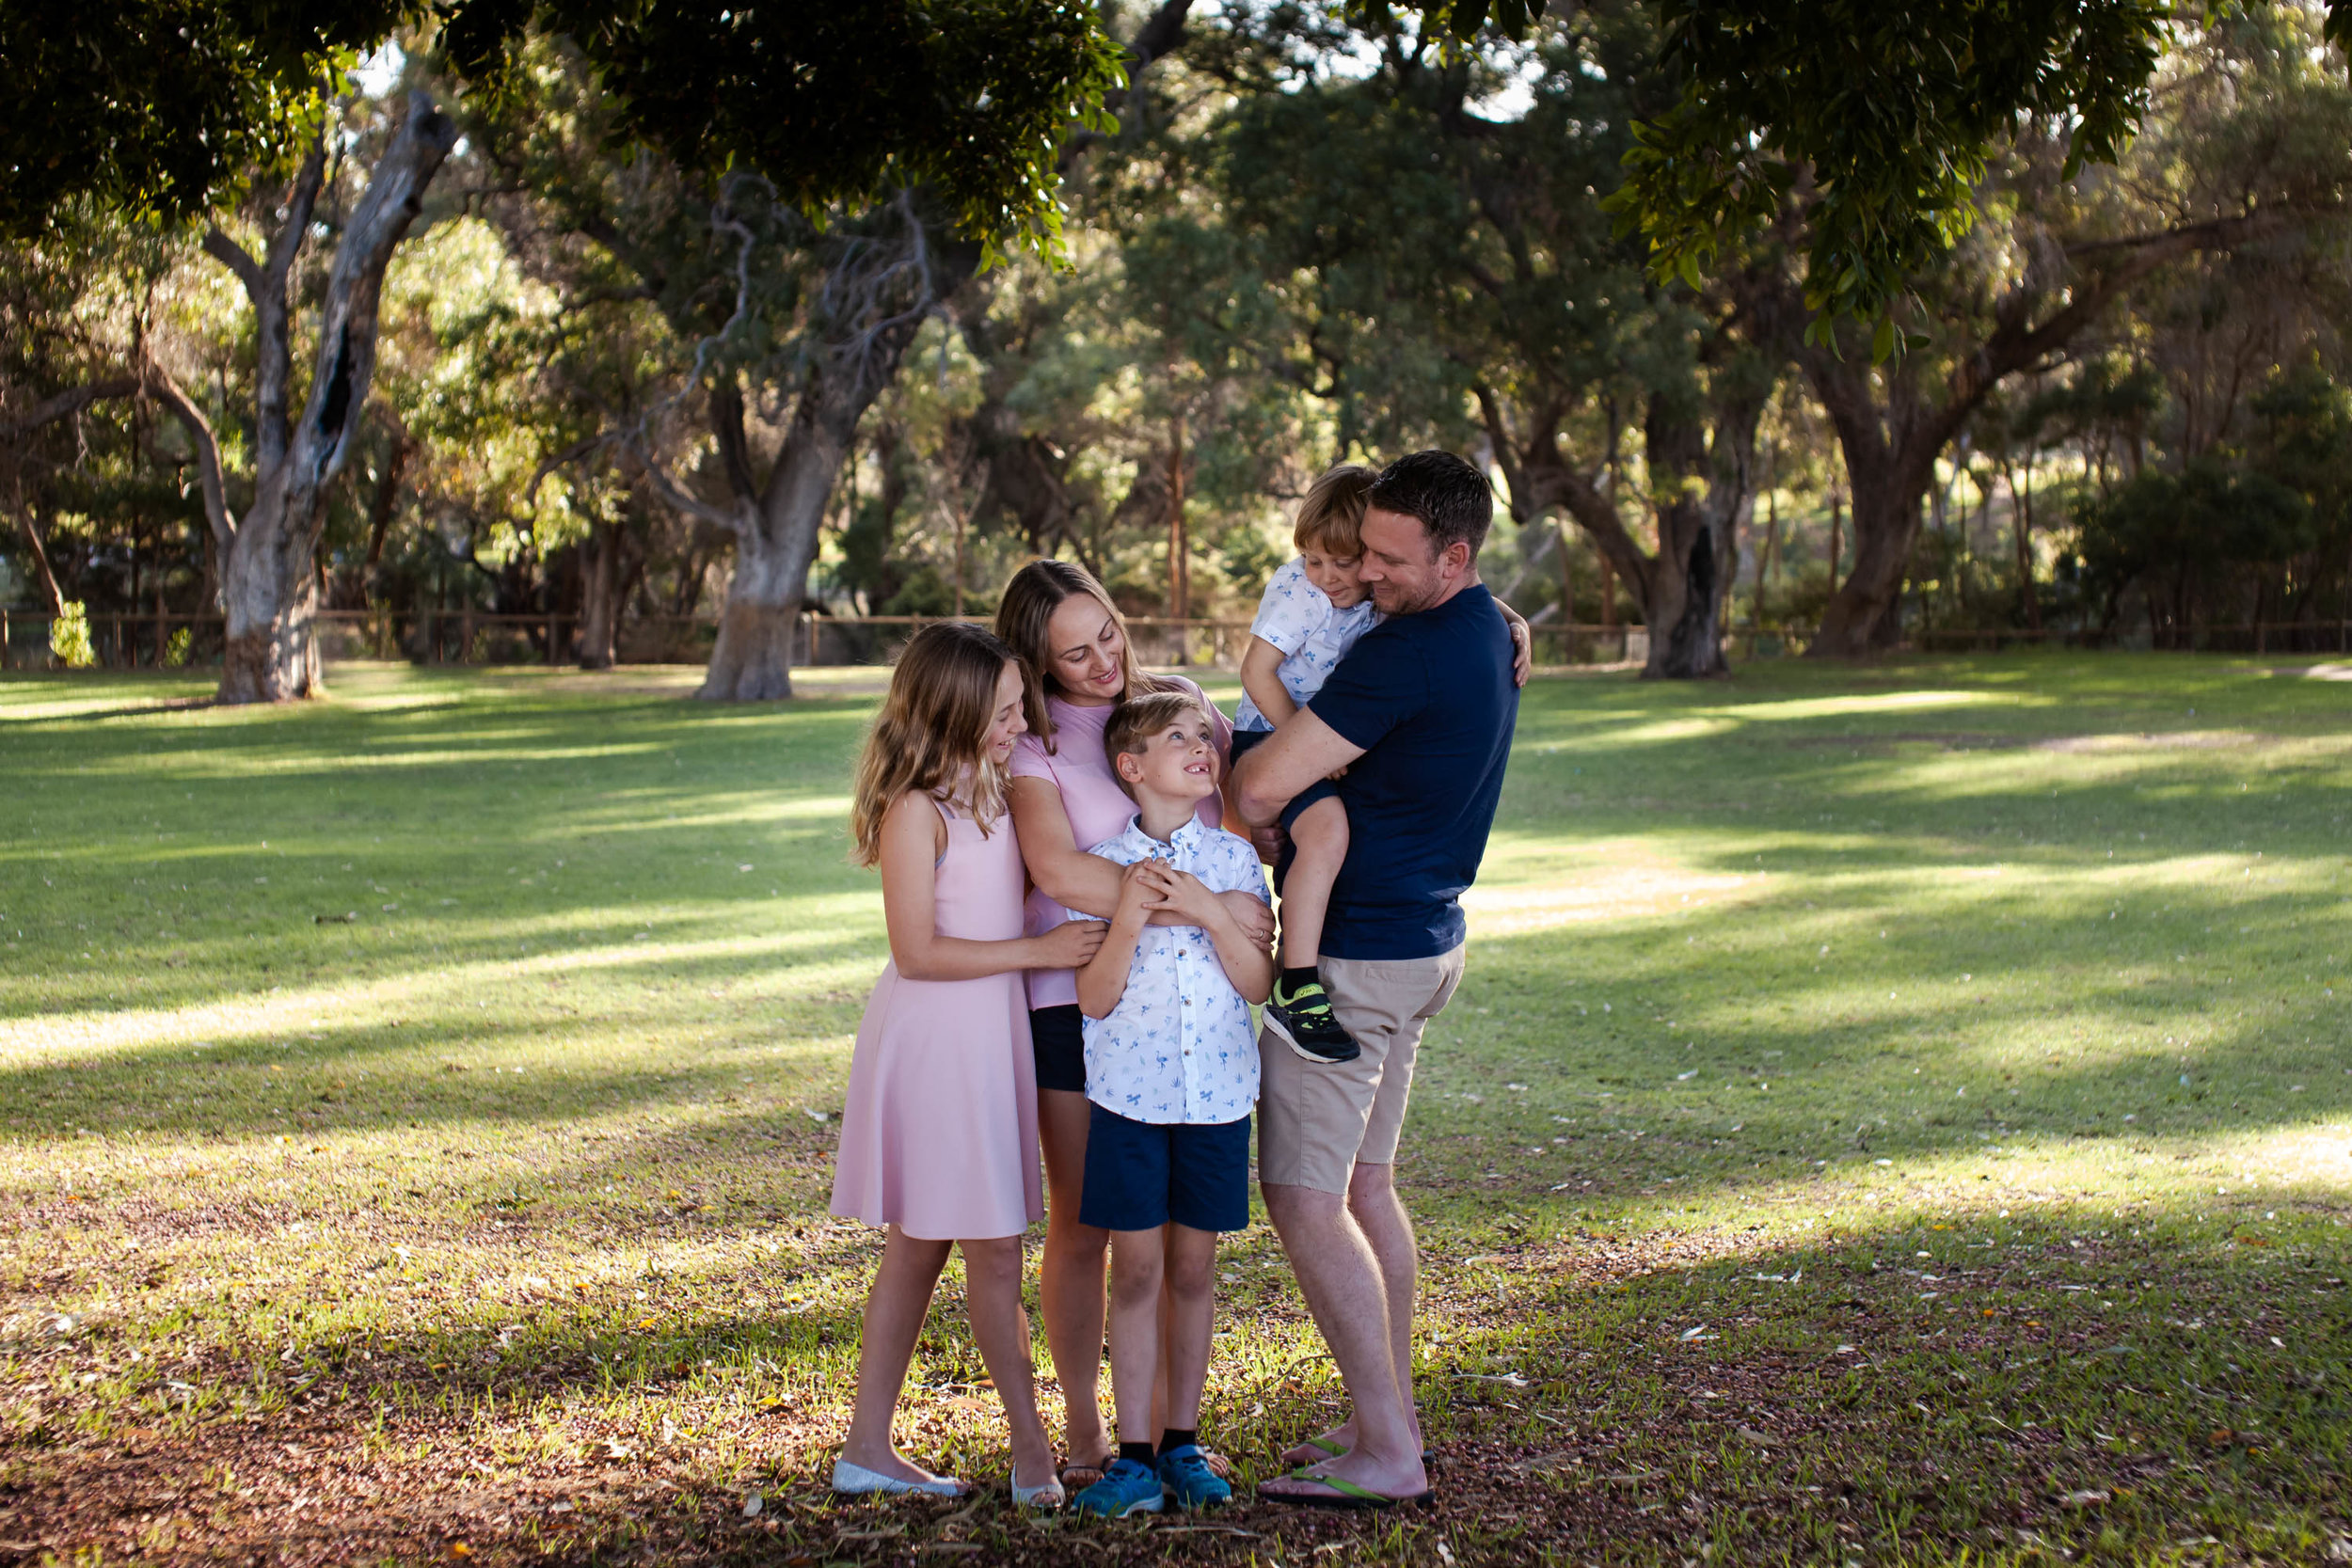 jackandpurdy-perth-lifestyle-family-photographer-3-2.jpg